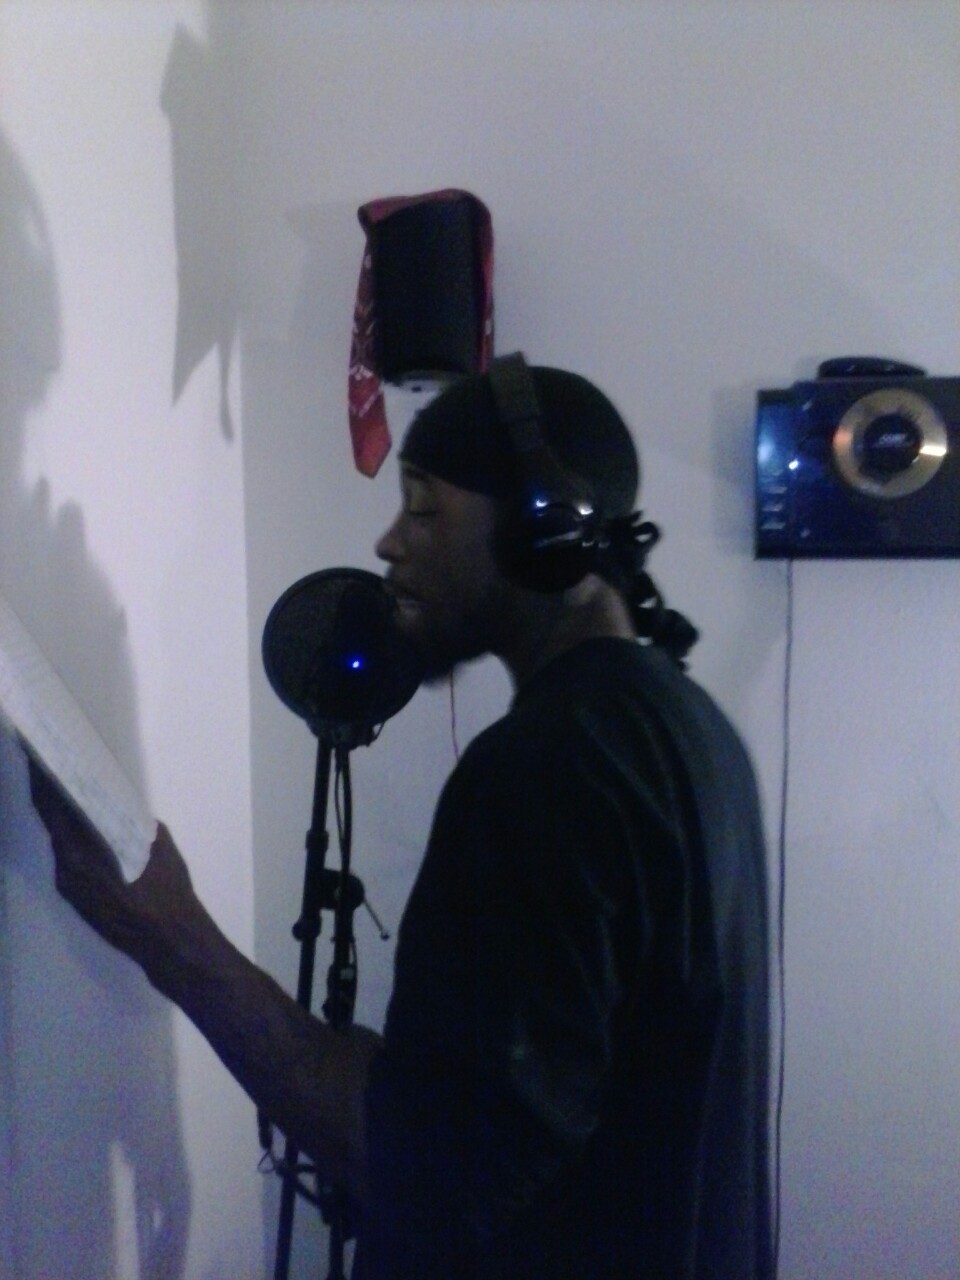 My brotha in rhyme Christilez in the booth puttin in work!!!